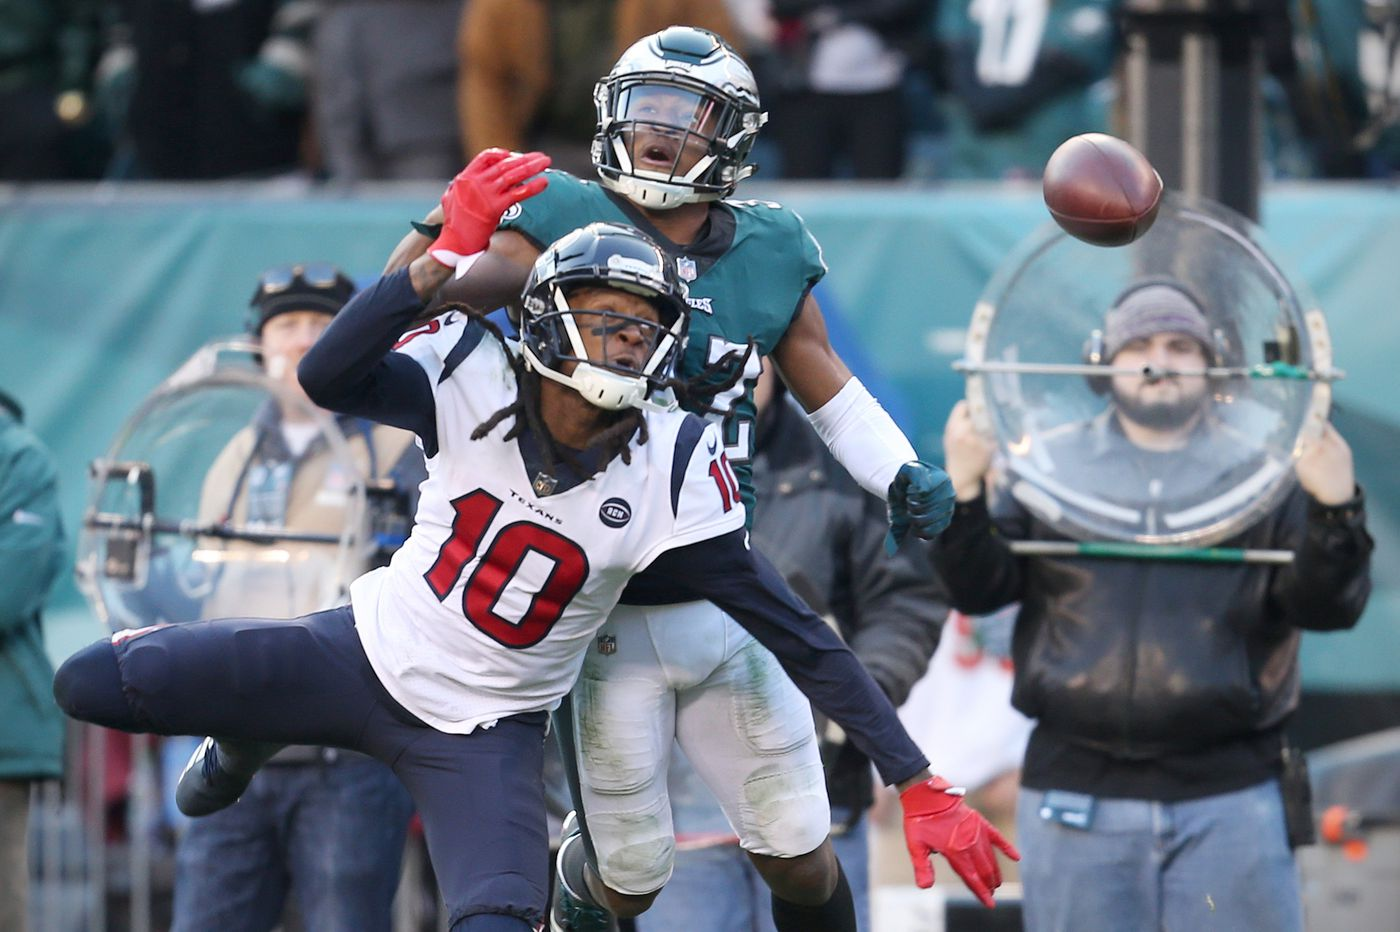 After solid first half, Eagles' defense stumbles late, gets bailed out by Nick Foles, Jake Elliott vs. Texans